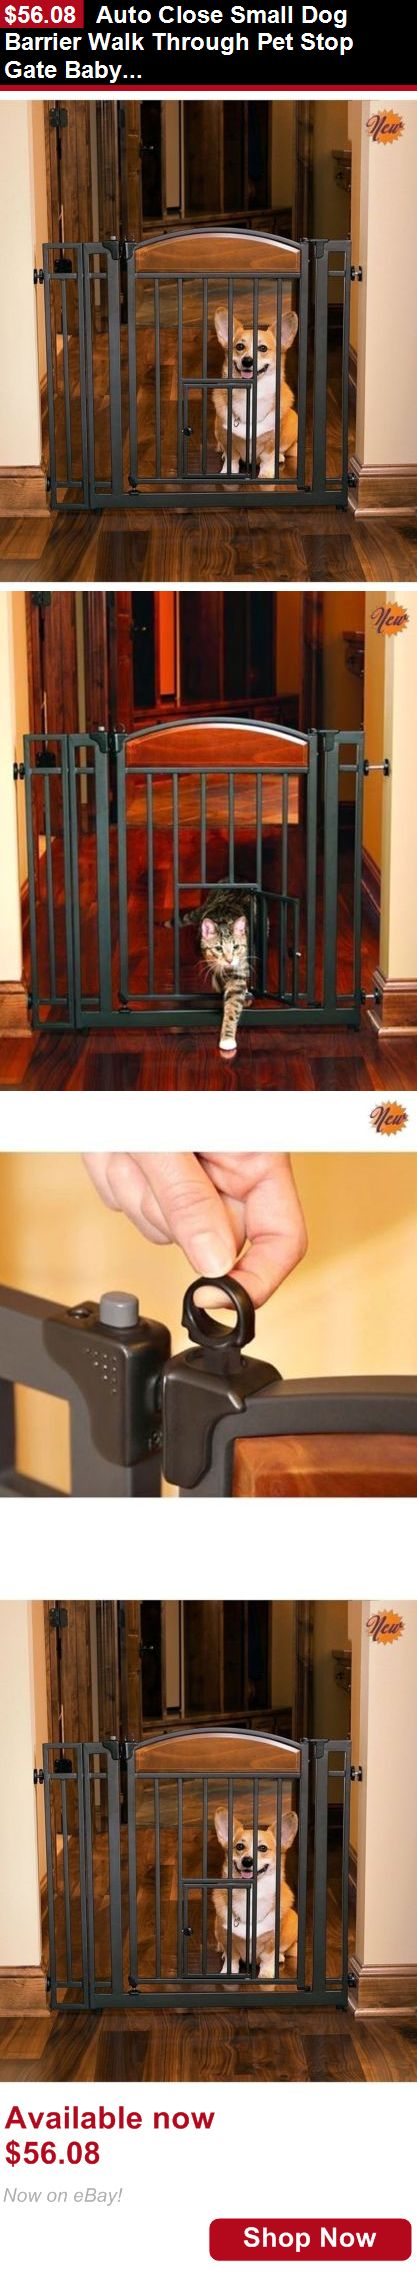 Baby Safety Gates: Auto Close Small Dog Barrier Walk Through Pet Stop Gate Baby Toddler Safety Door BUY IT NOW ONLY: $56.08